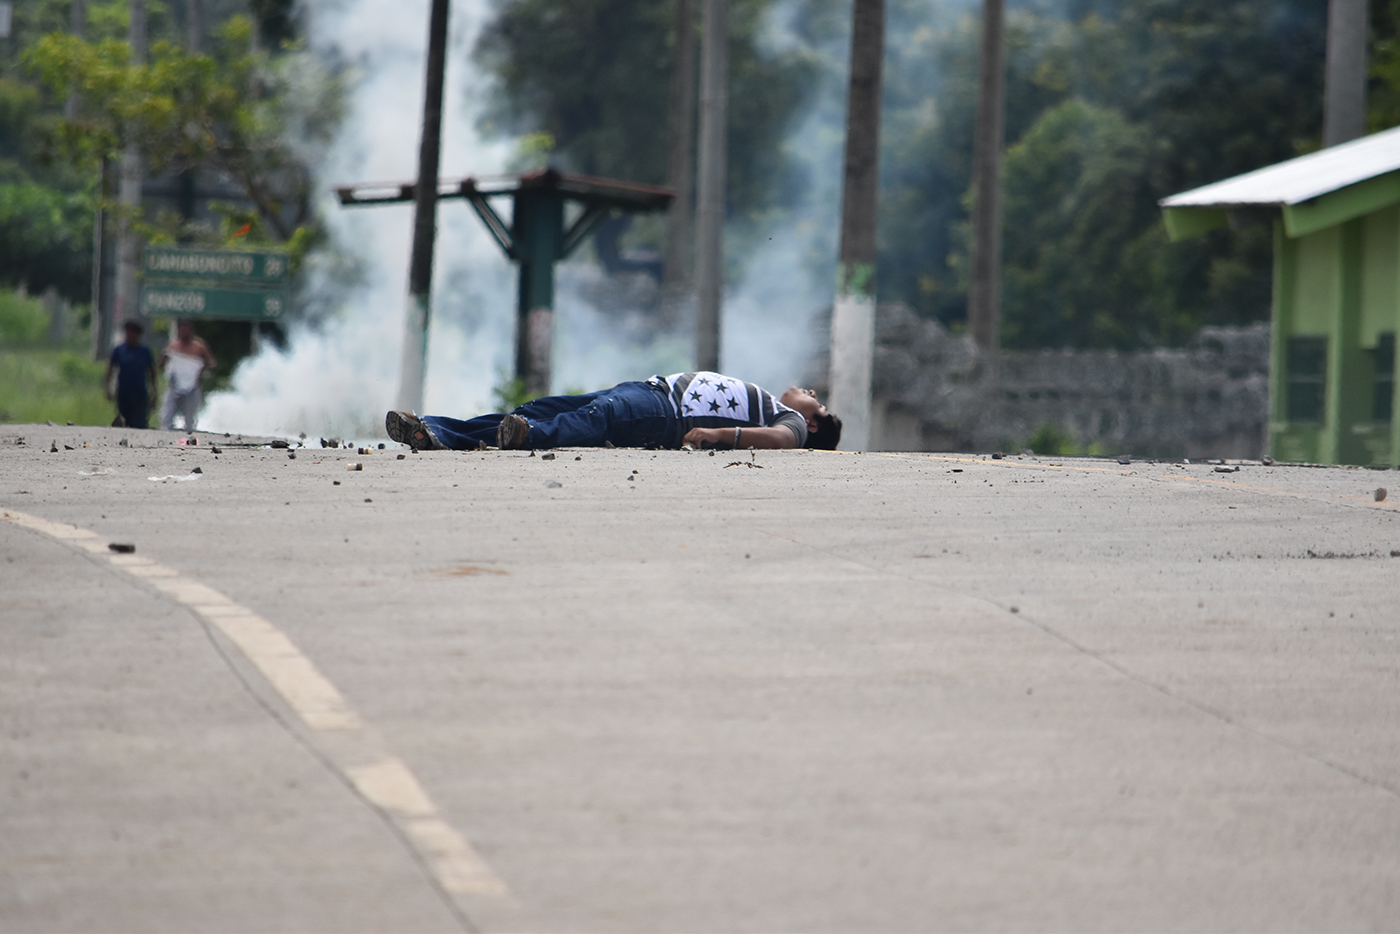 EVIDENCE. Carlos Maaz was killed during a demonstration on May 27, 2017 in El Estor. Photo courtesy of Carlos Choc